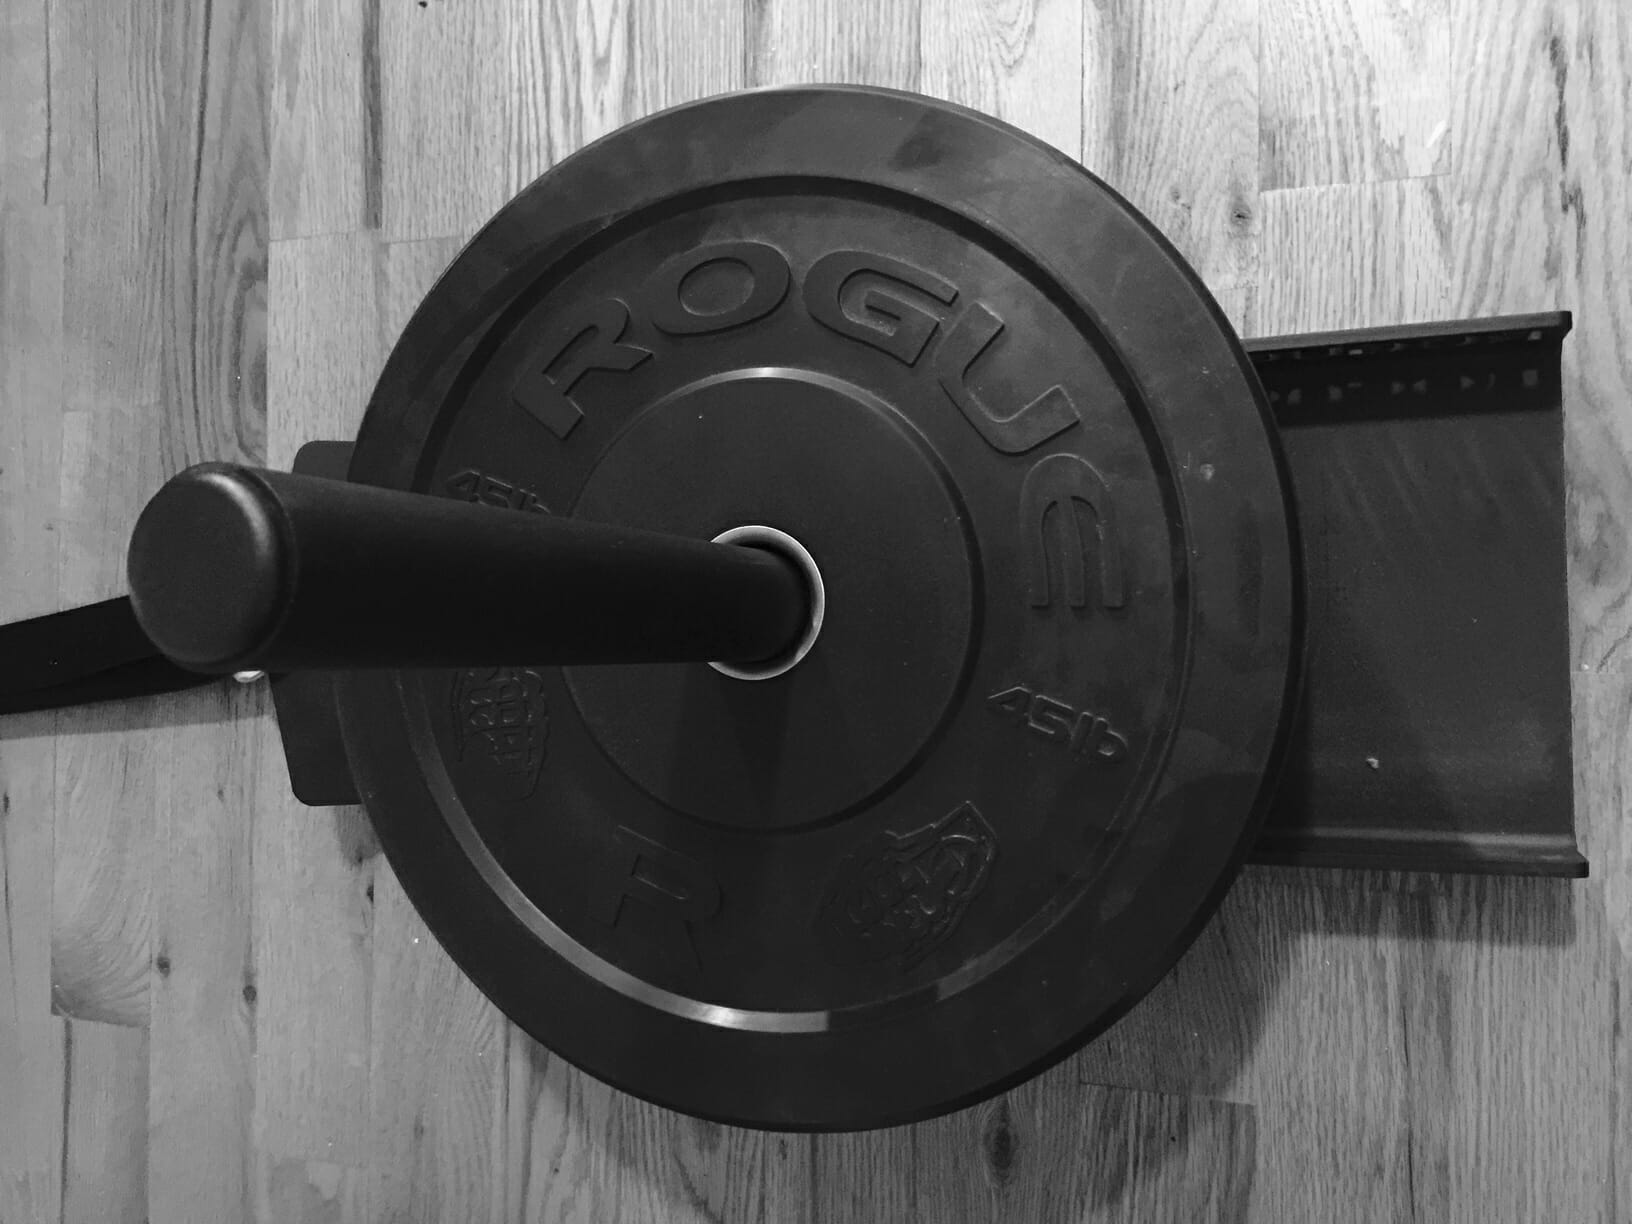 Rogue Weight Sled.